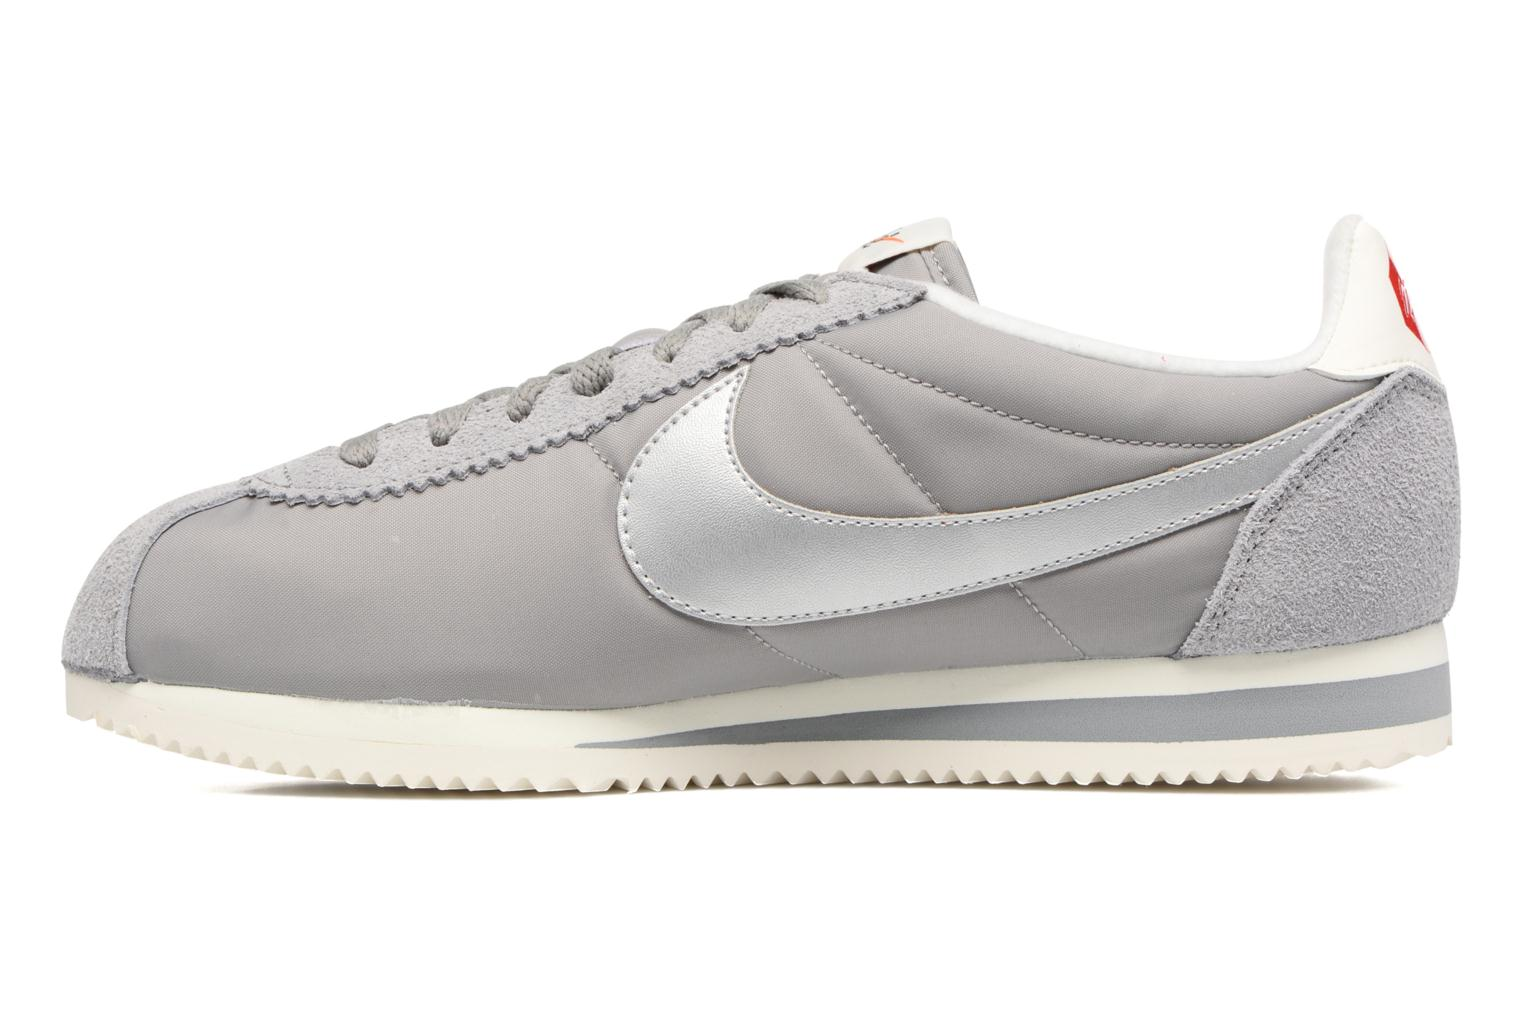 Classic Cortez Nylon Prem Medium Grey/Metallic Silver-Sail